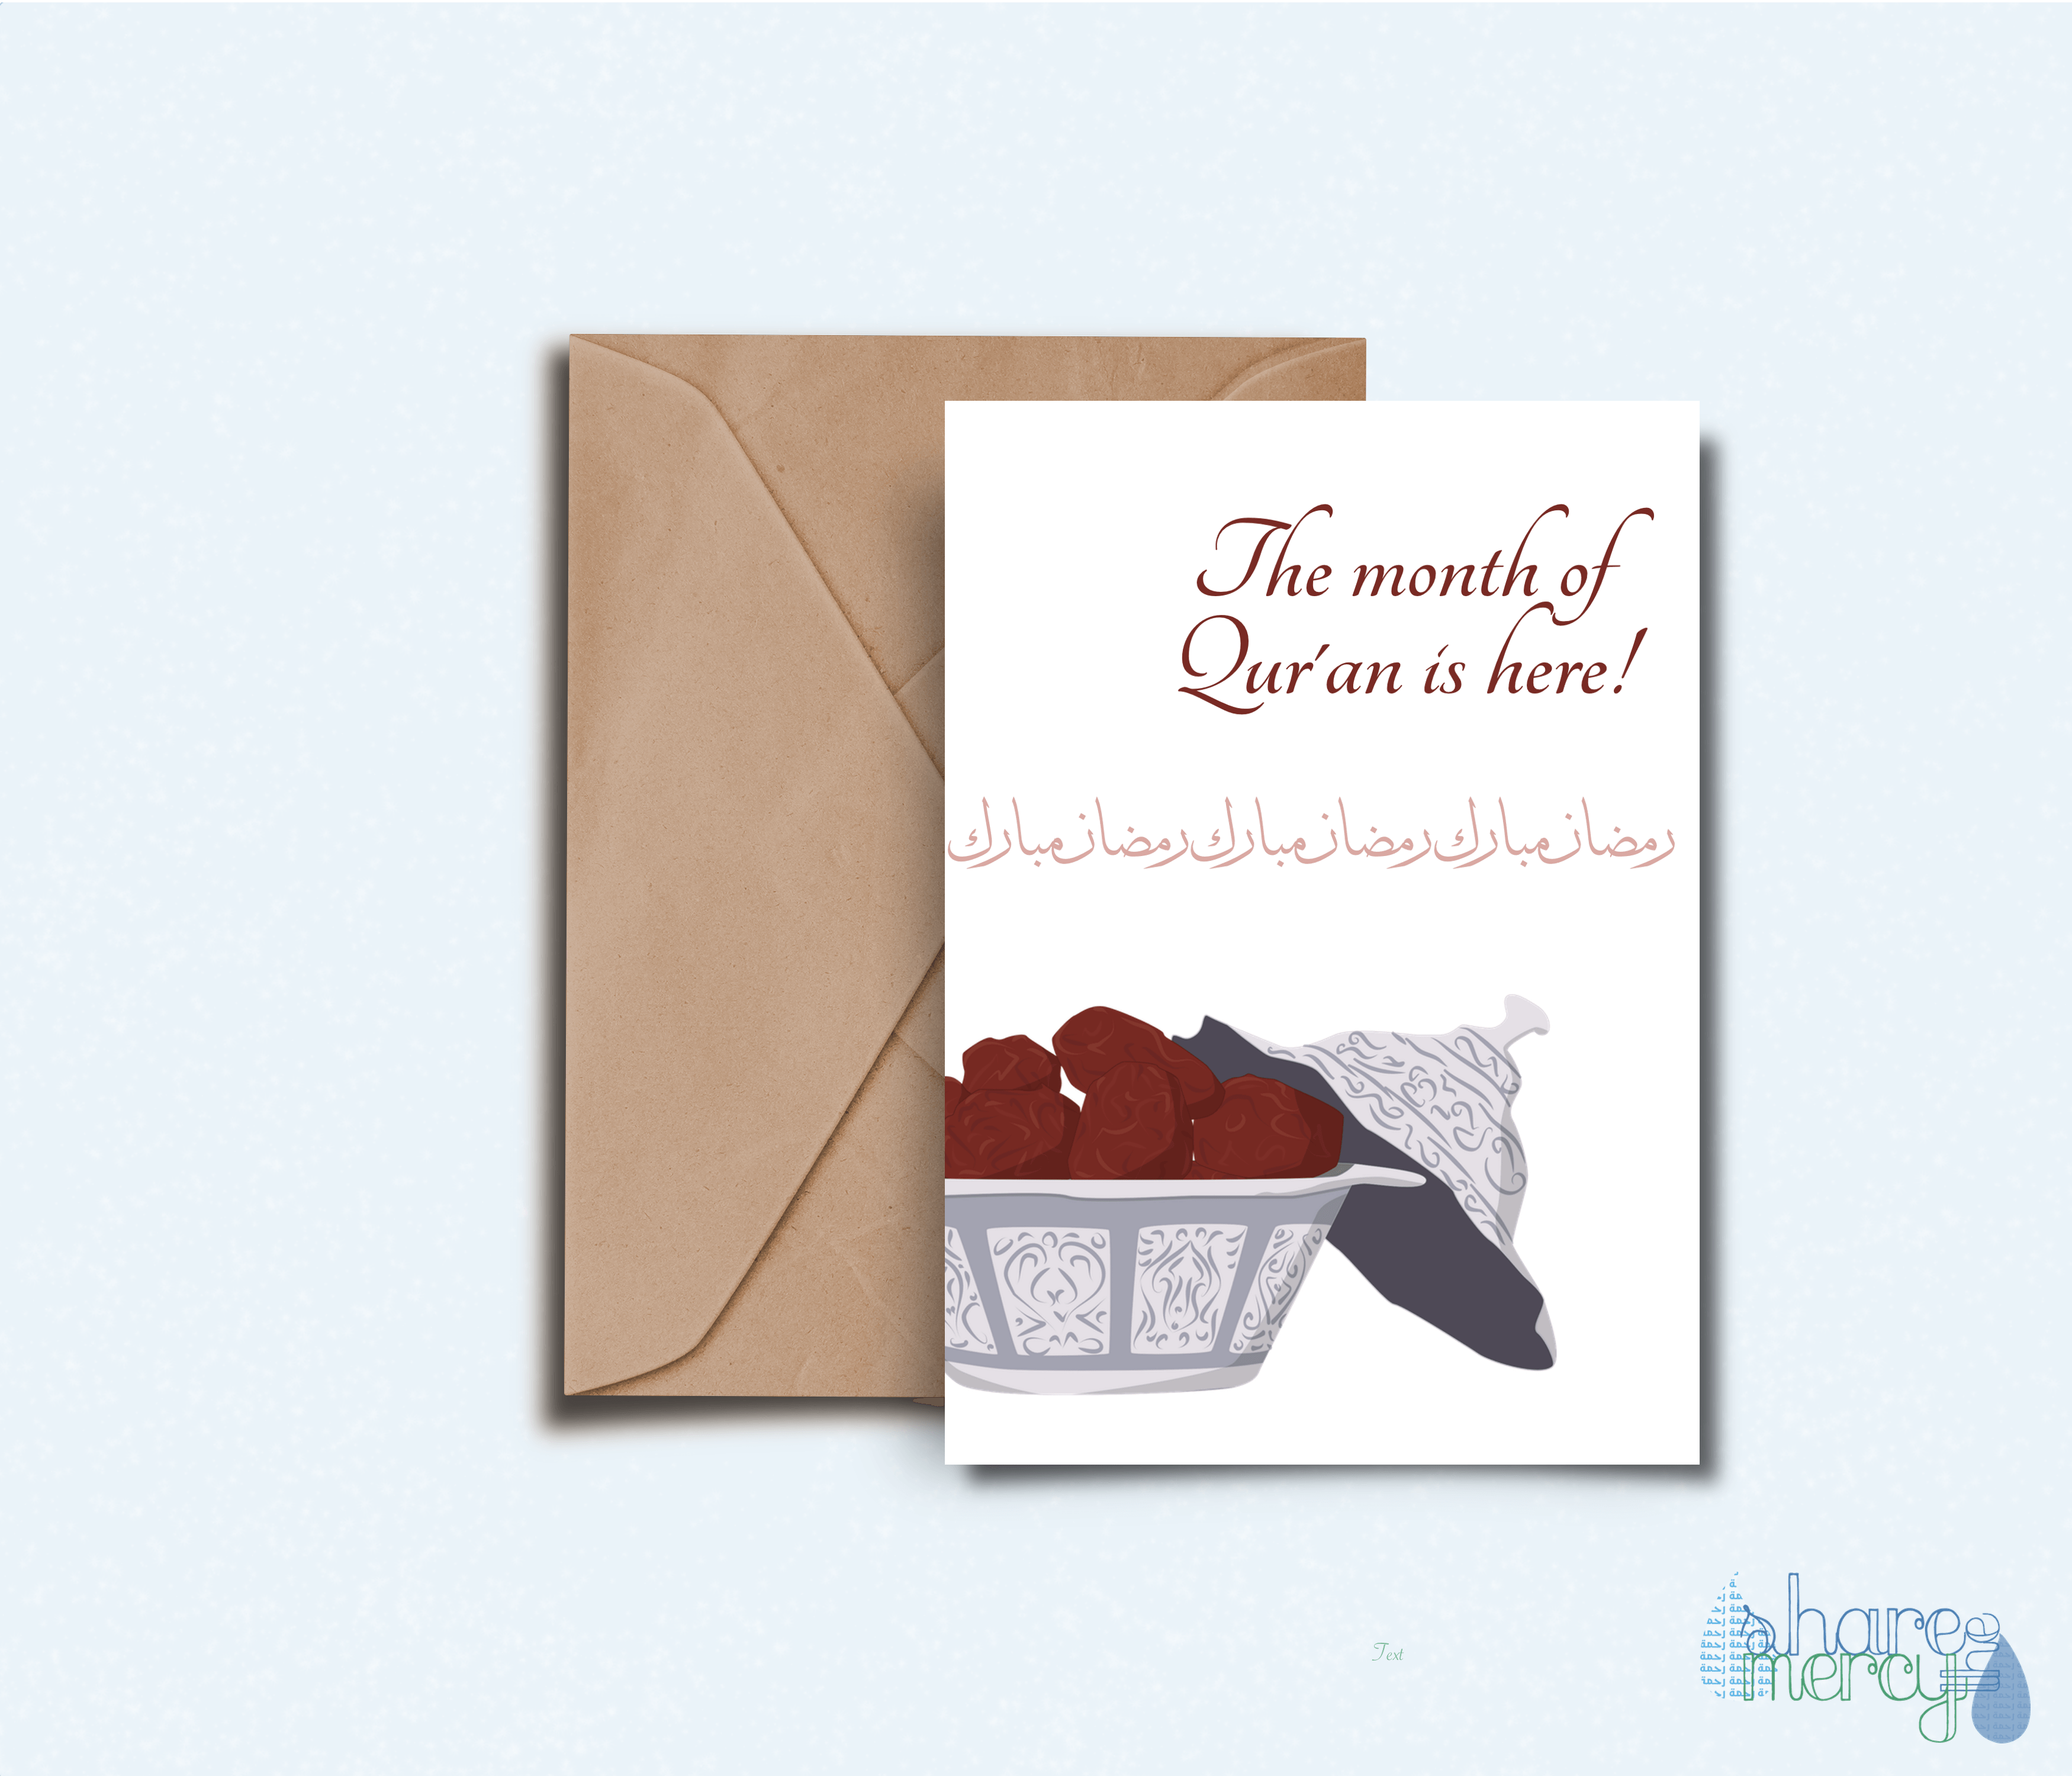 photograph about Ramadan Cards Printable called Dates and Quran - Printable Greeting Card Proportion the Mercy